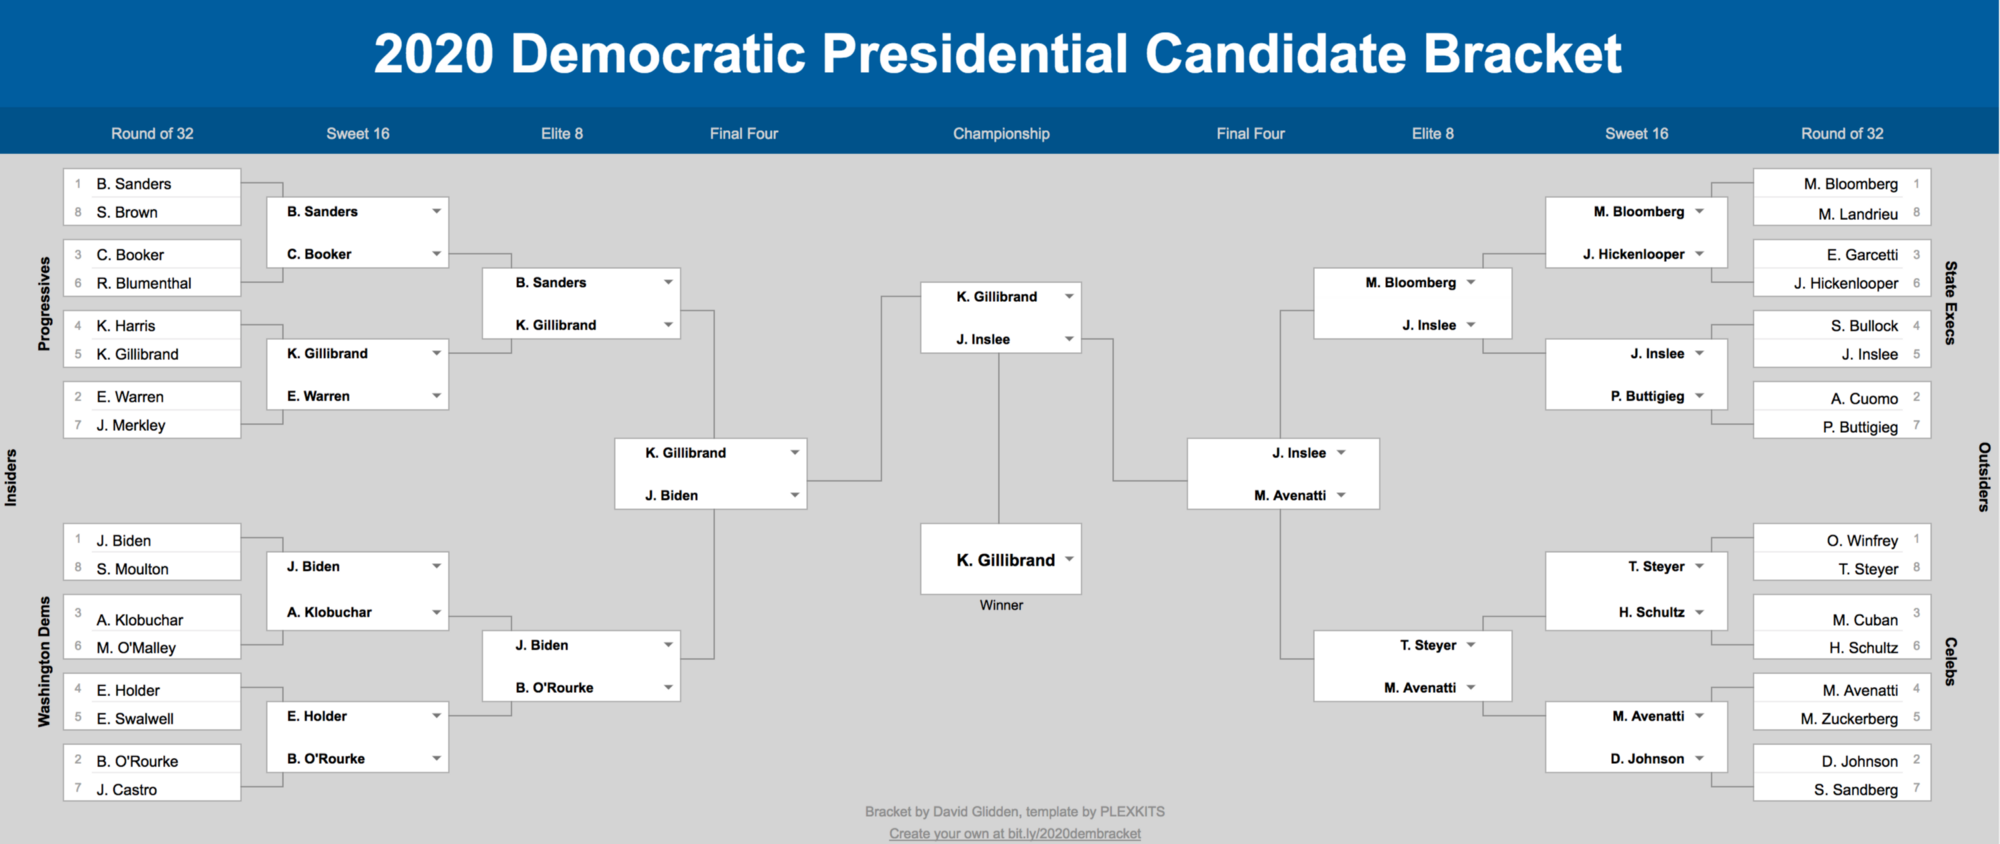 32 Presidential Candidates and Their Paths to the 2020 Democratic